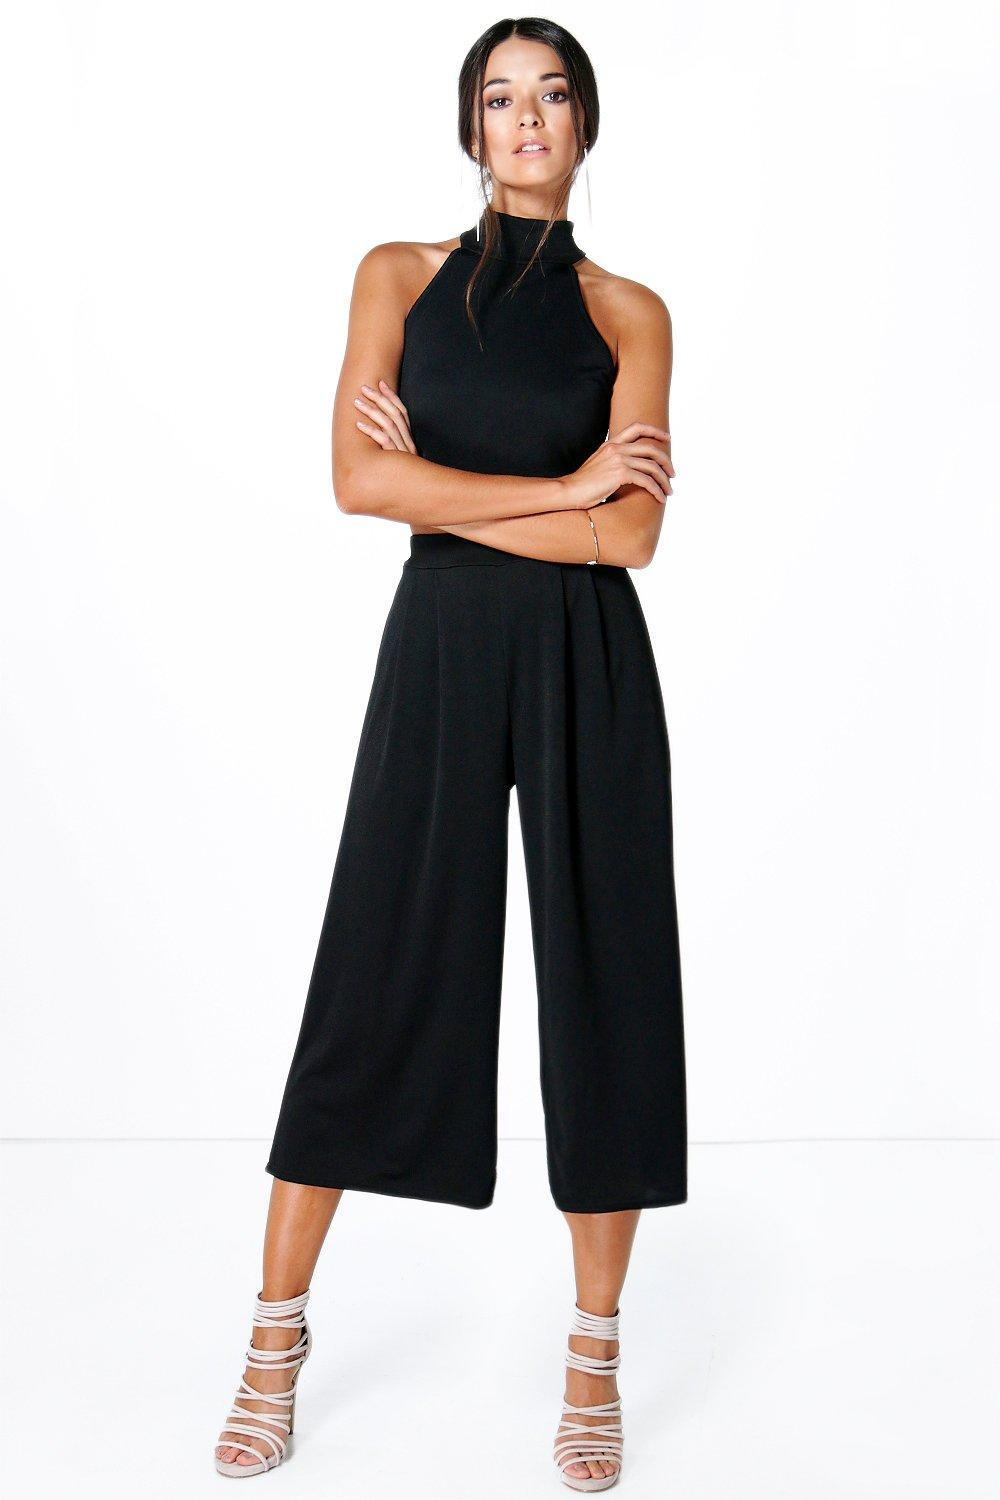 High Neck Crop & Long Culotte Co Ord Set Ivory - pattern: plain; sleeve style: sleeveless; length: cropped; predominant colour: black; occasions: evening; style: top; fibres: polyester/polyamide - 100%; fit: body skimming; sleeve length: sleeveless; pattern type: fabric; texture group: jersey - stretchy/drapey; season: s/s 2016; neckline: high halter neck; wardrobe: event